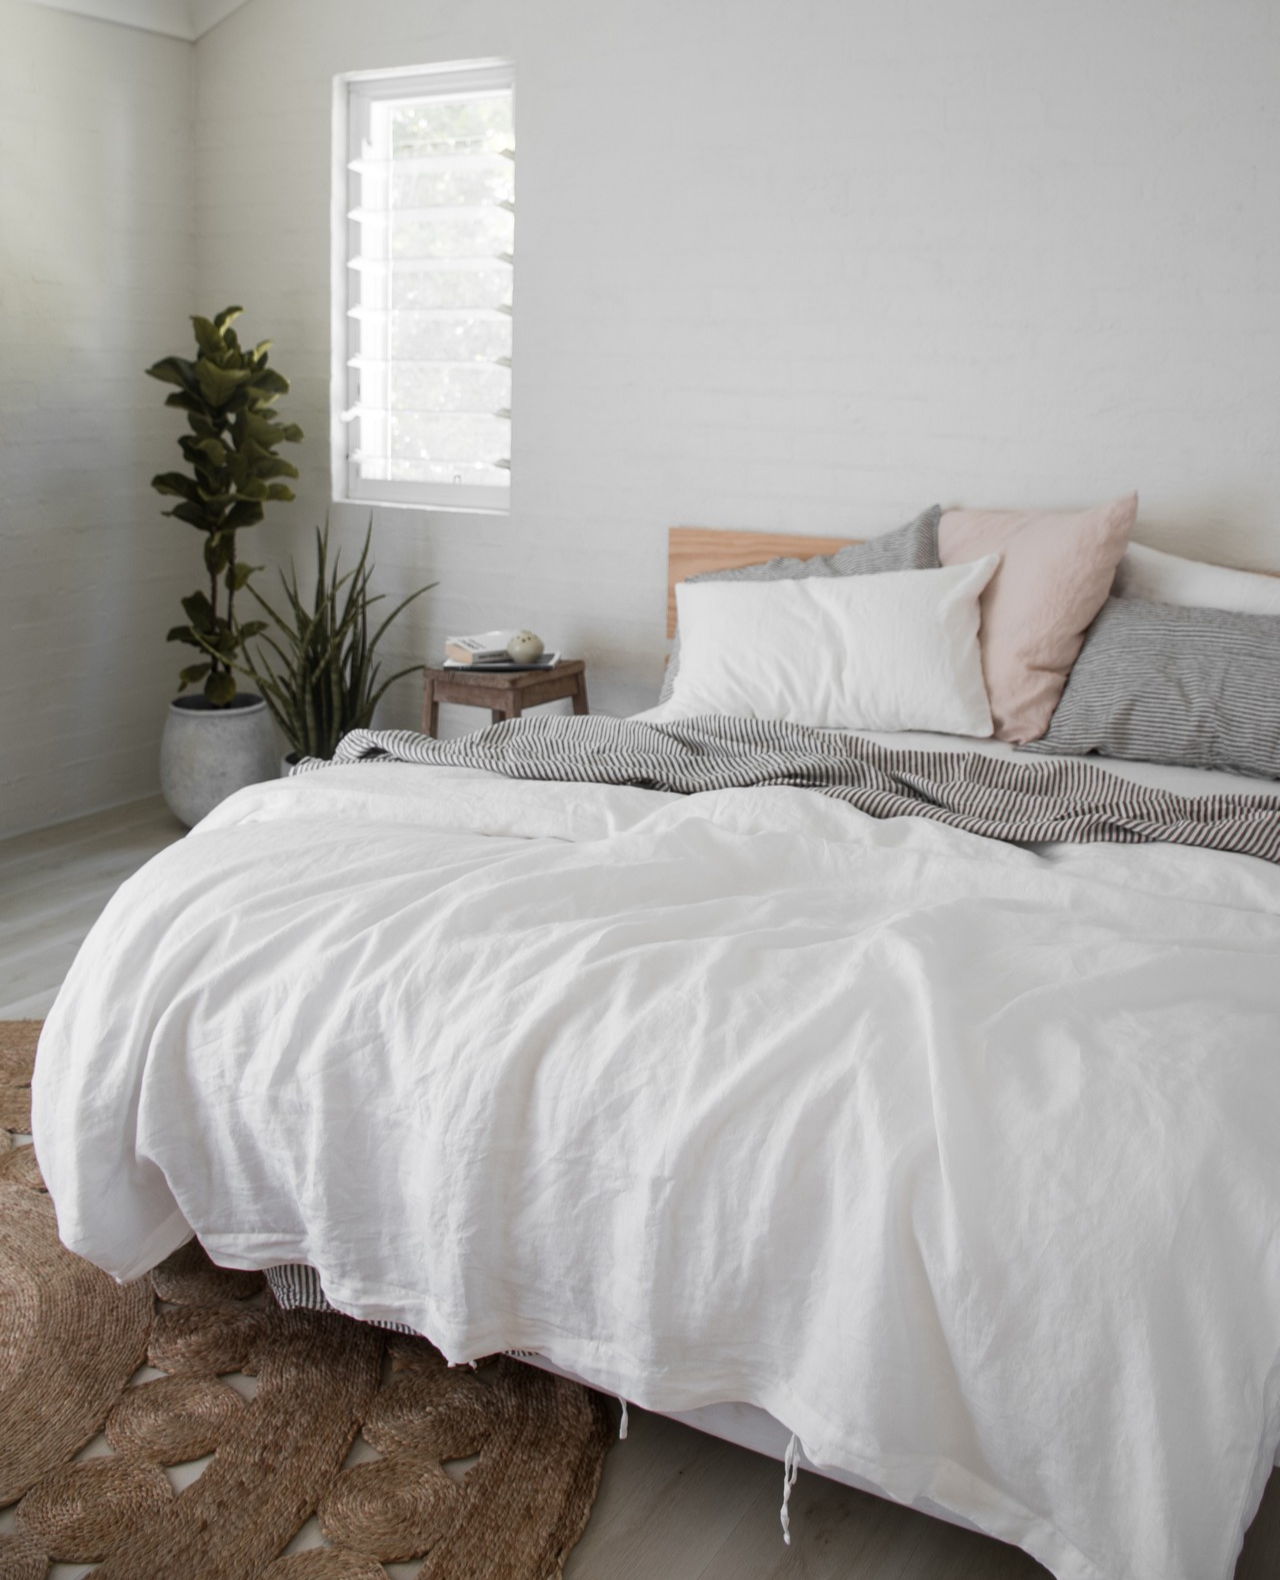 French Linen Bedding In White Blush Soft Grey Beautiful Home Decor Aesthetic Design Bedroom Styling White Bedding Bed Luxury Bedding